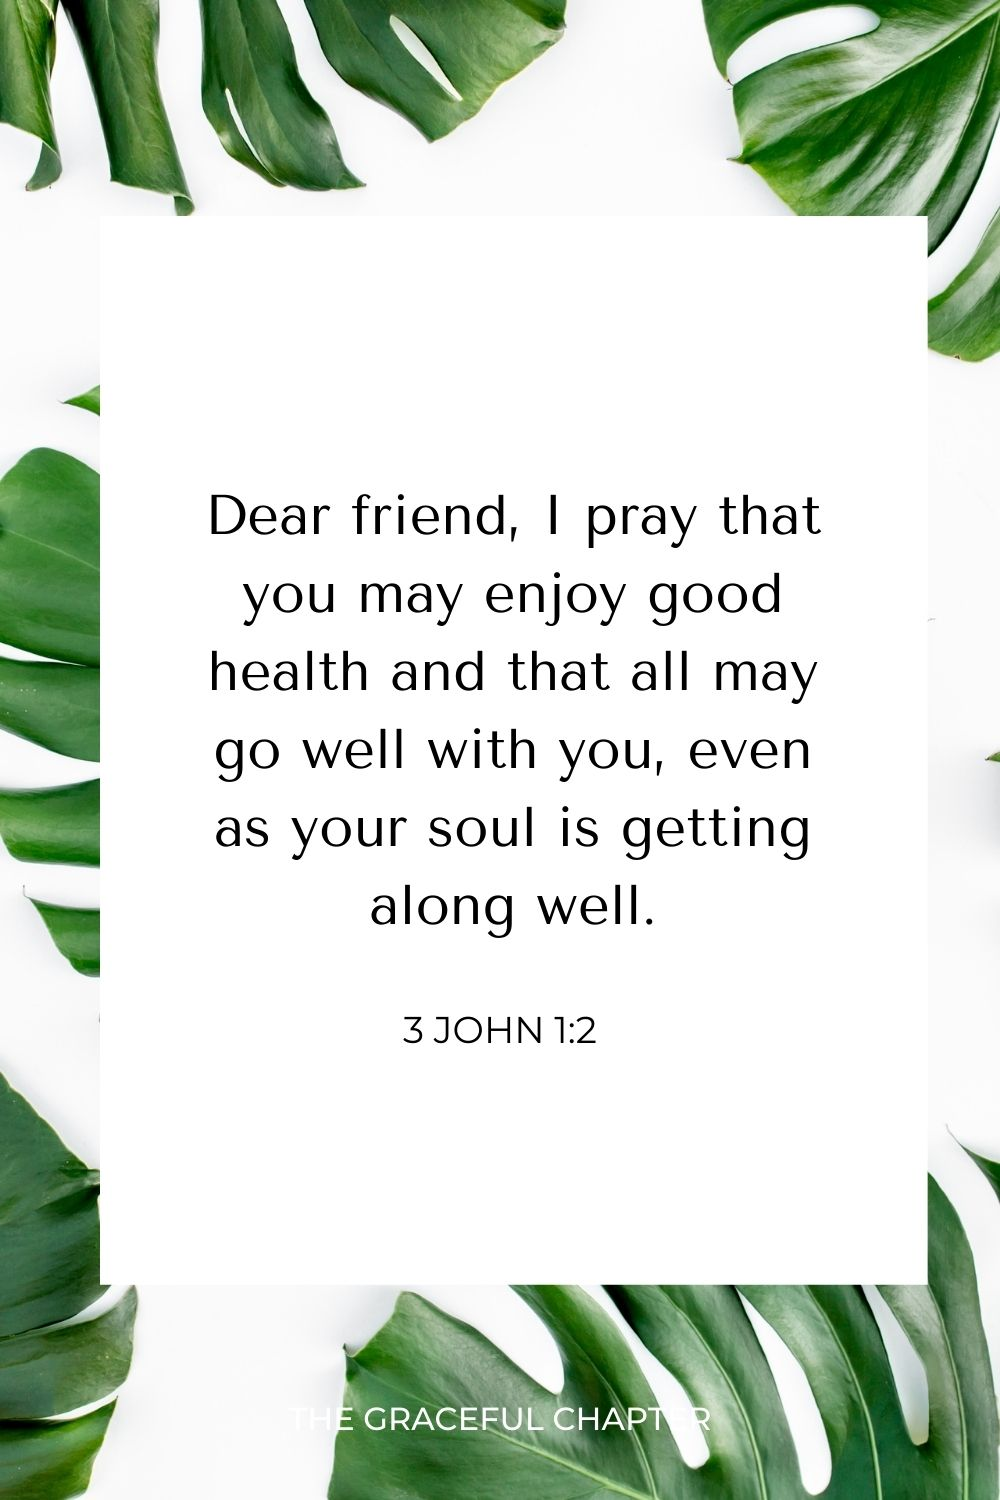 Dear friend, I pray that you may enjoy good health and that all may go well with you, even as your soul is getting along well. 3 John 1:2